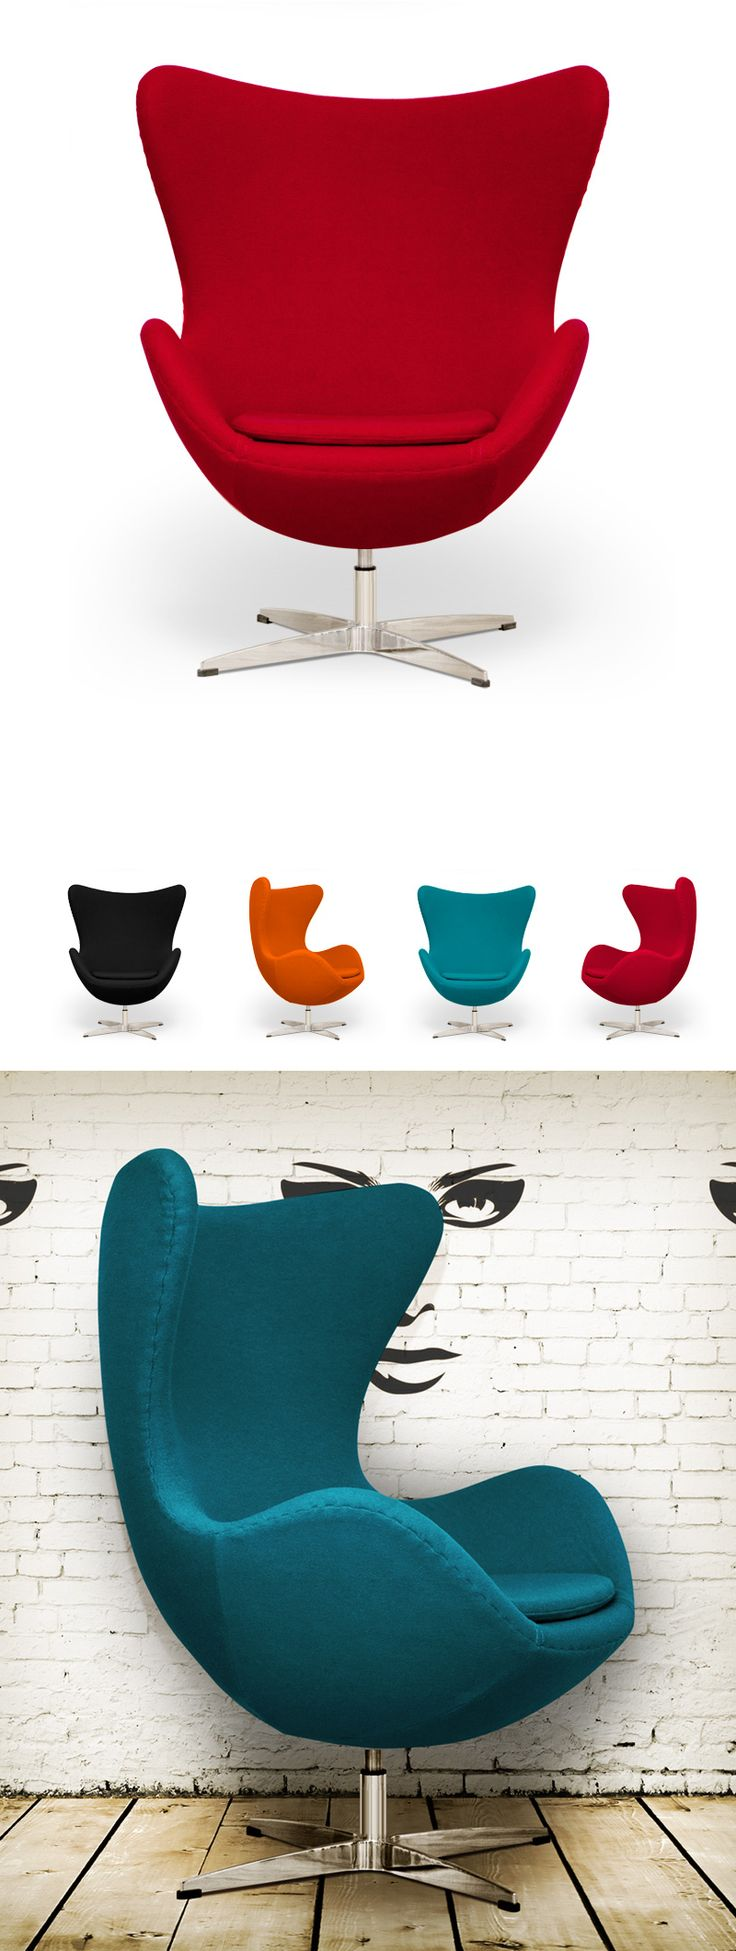 Arne Jacobsen Egg Chair - Euro 5,149(incl. 25% VAT) www.fritzhansen.com The Egg™ is available in a wide range of fabric and leather upholstery. The star base is made of aluminium mounted on a satin polished steel pedestal. The shells are made of a synthetic material, padded with cold-cured foam. An upholstered foot stool with aluminium base is available for the Egg.